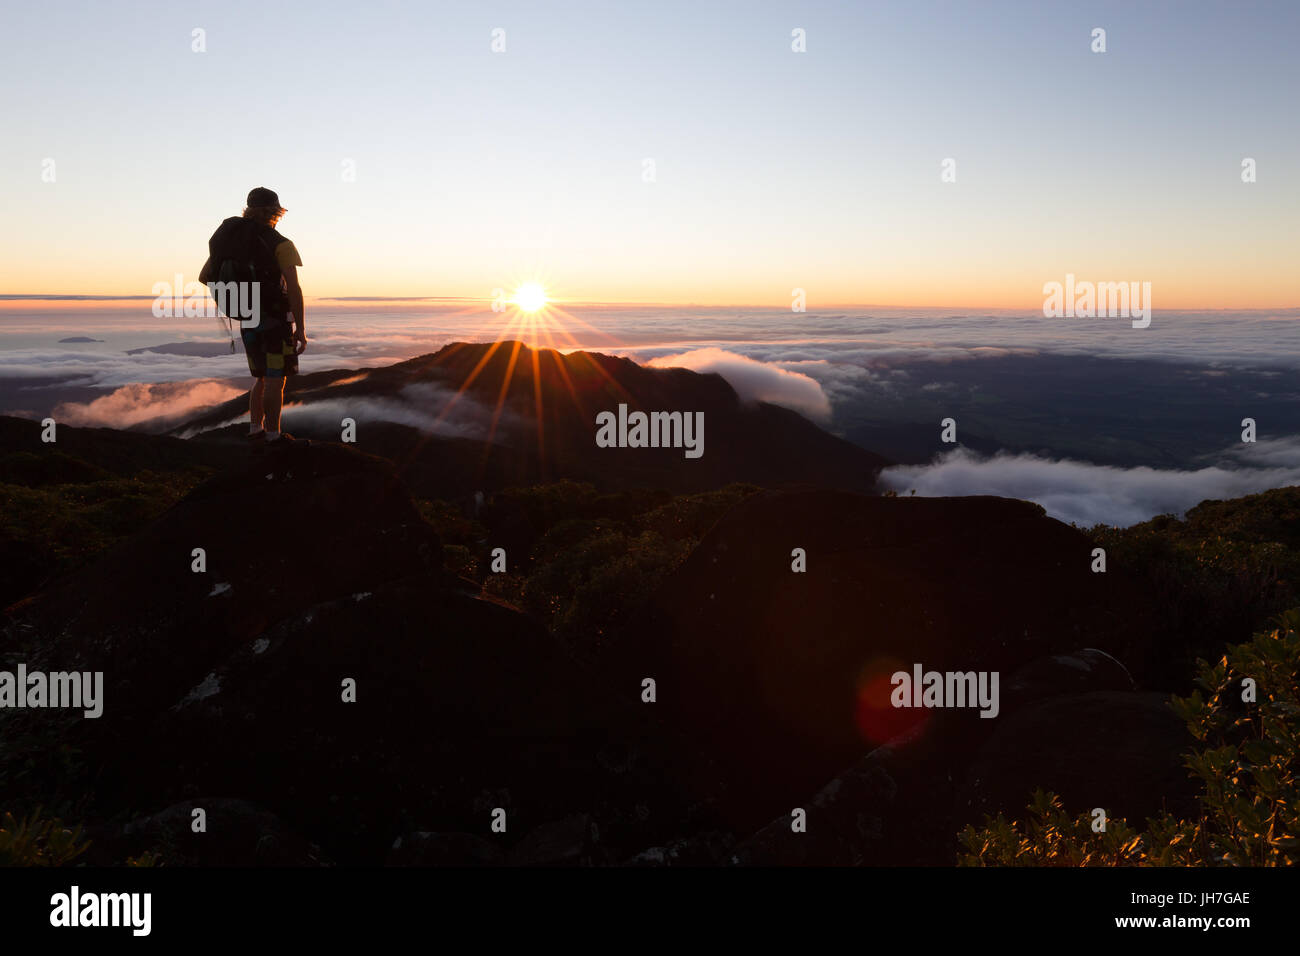 A hiker watches a beautiful sunrise on from the summit of a mountain above the clouds in Australia. Stock Photo